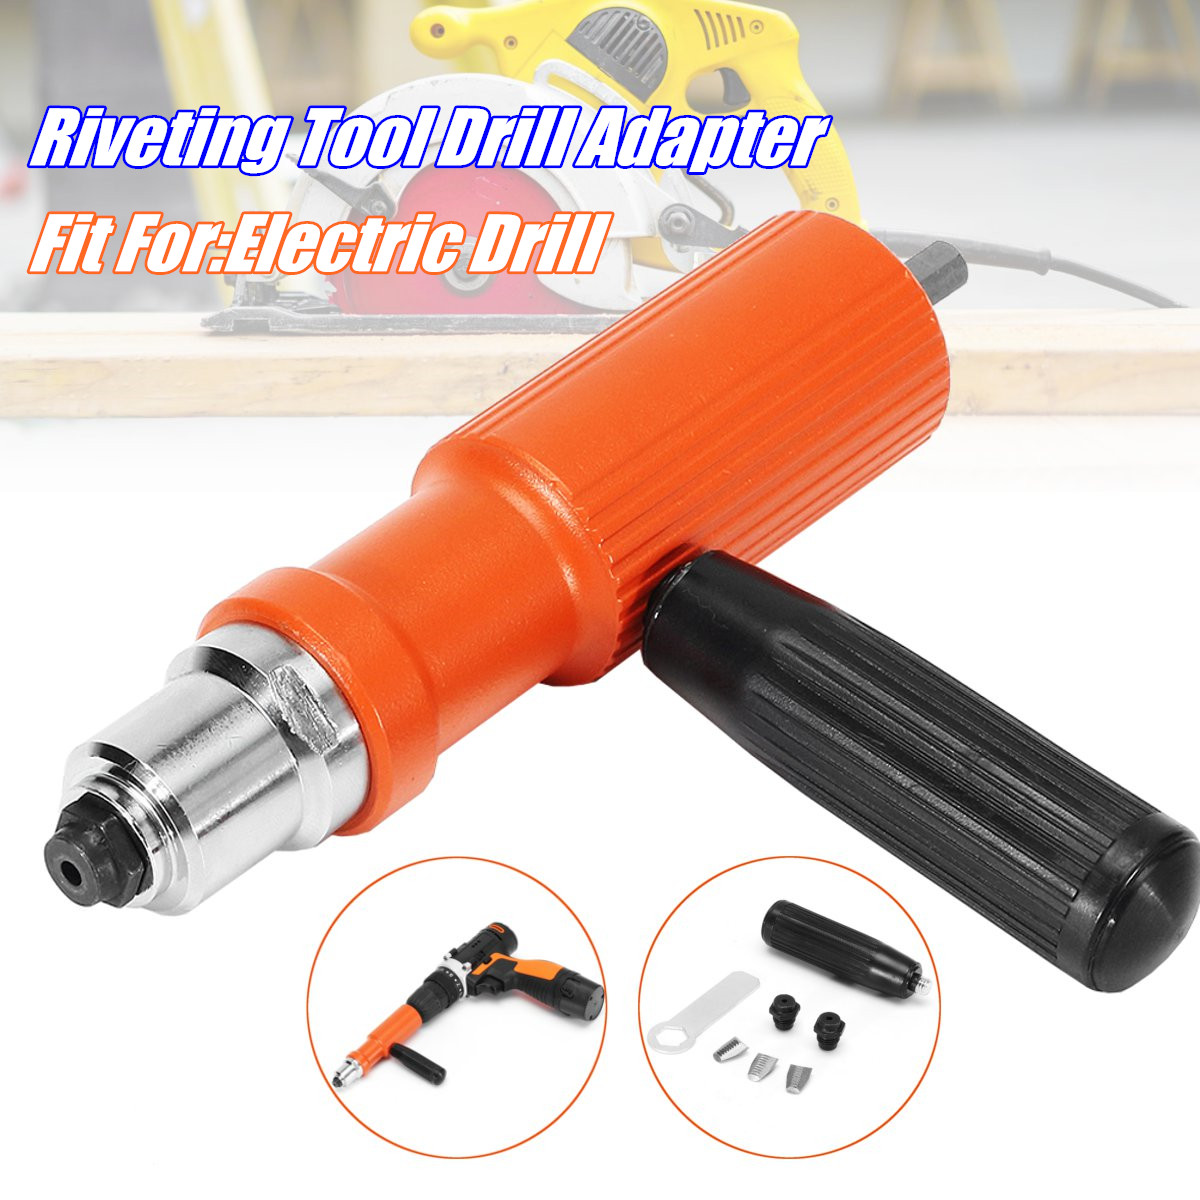 Drillpro Riveting Tool Drill Adapter Upgraded Electric Rivet Nut Gun Cordless Riveter Adaptor for Electric Drill drillpro riveting tool drill adapter upgraded electric rivet nut gun cordless riveter adaptor for electric drill